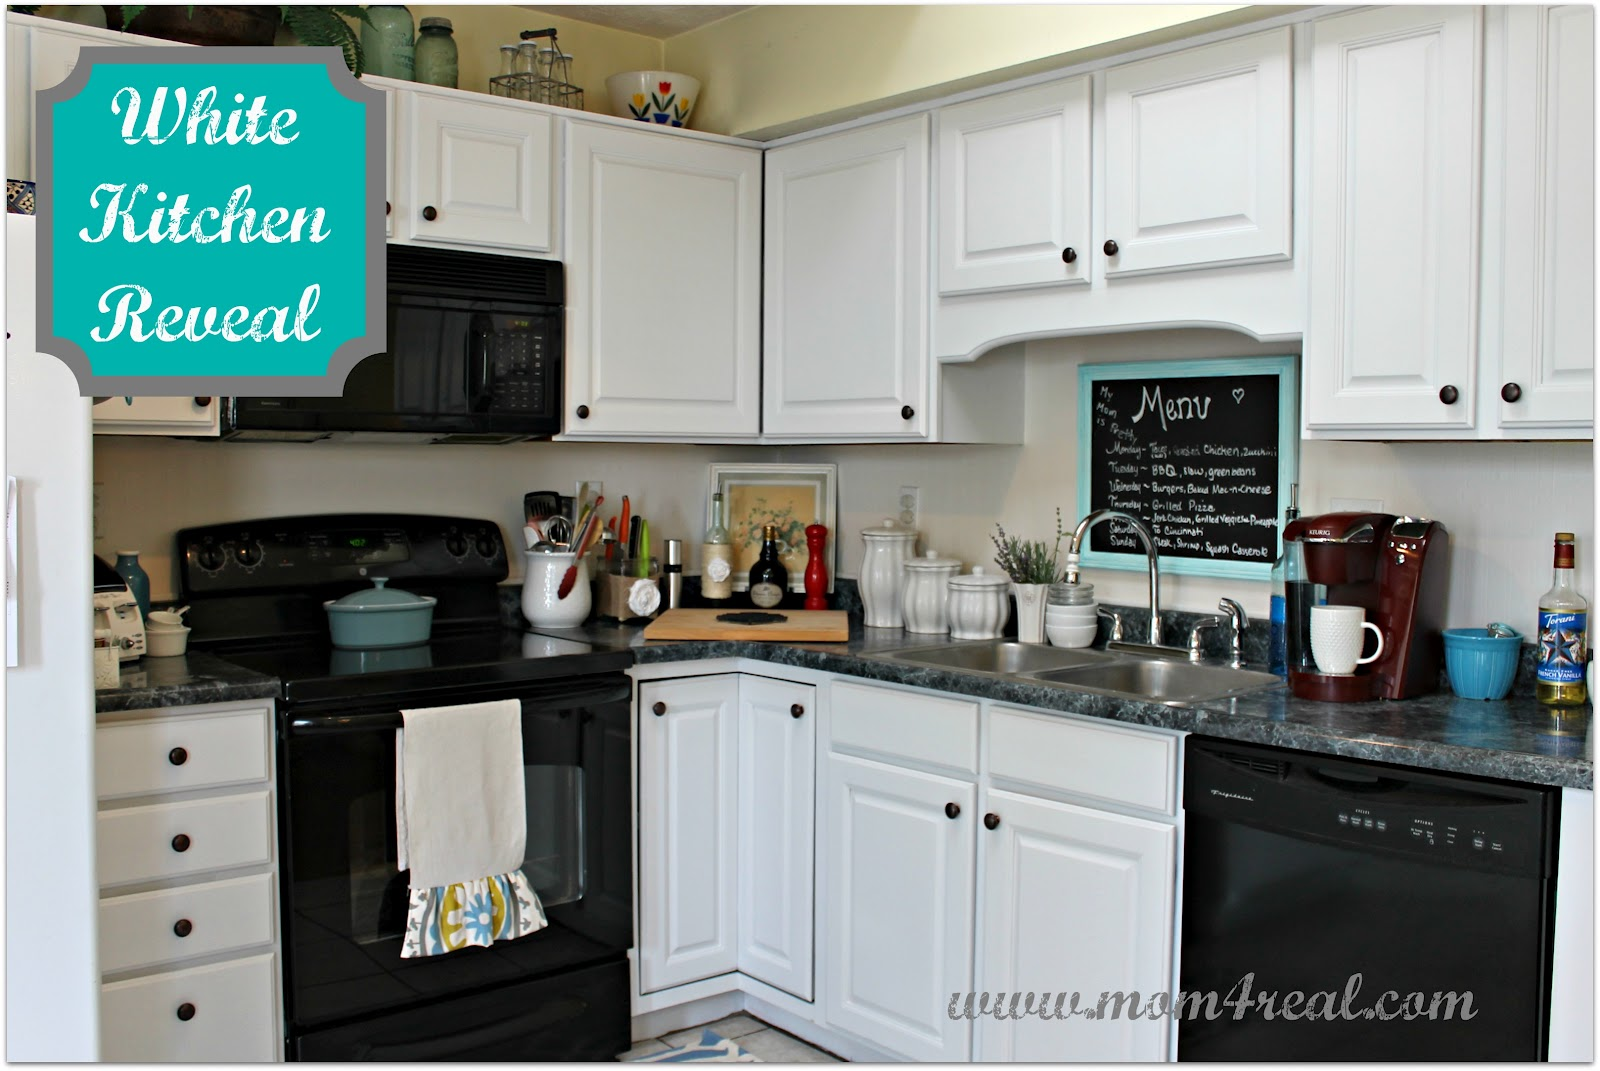 Stunning White Kitchen Reveal A Before u After